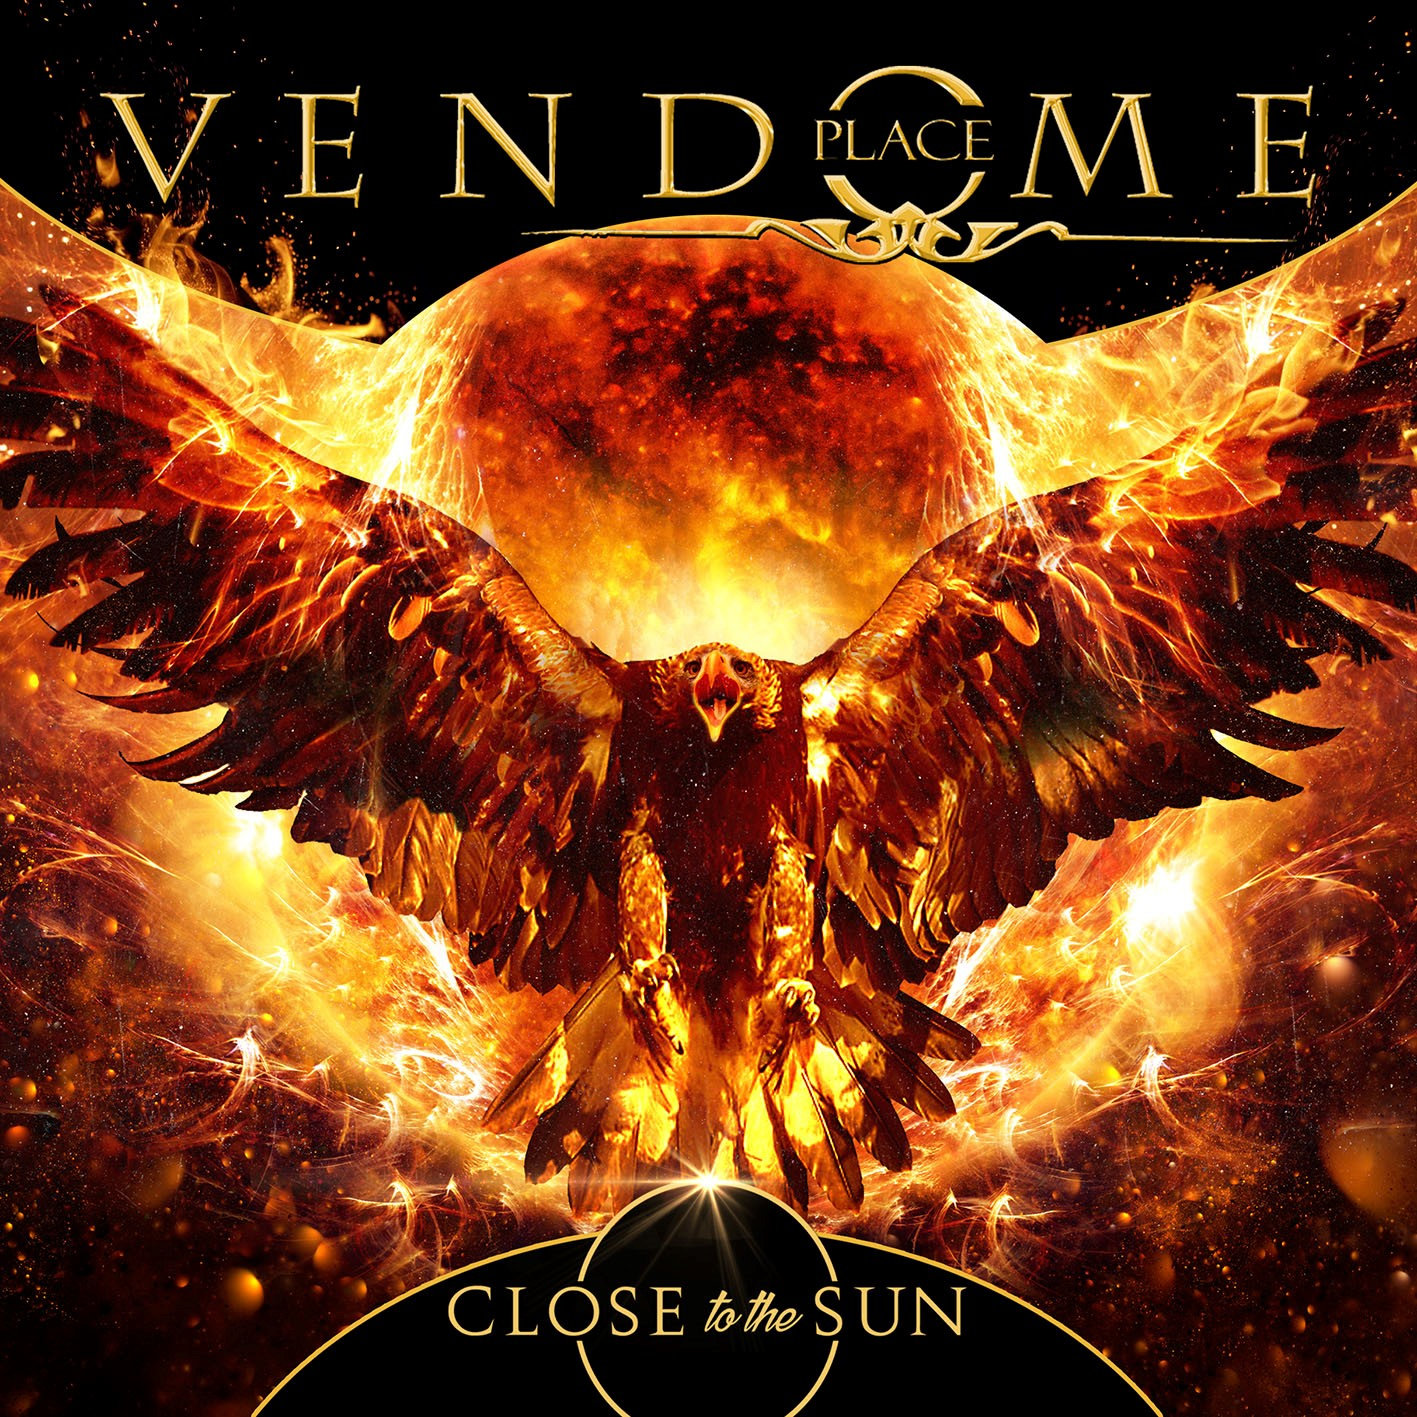 Place Vendome : Close To The Sun